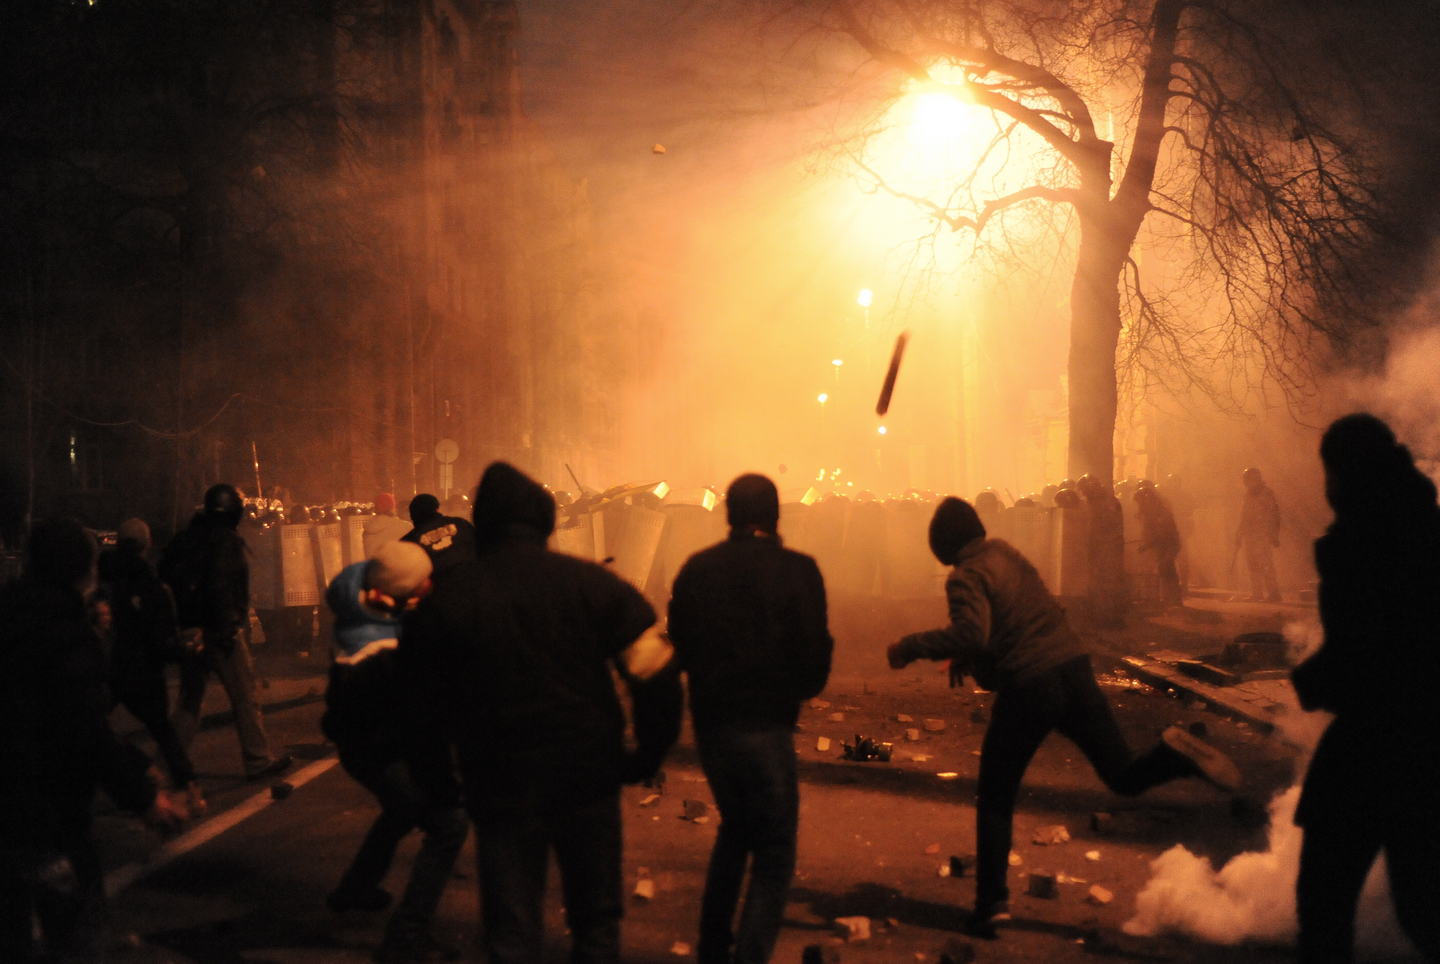 Survival Skills: How to Survive a Rioting Crowd